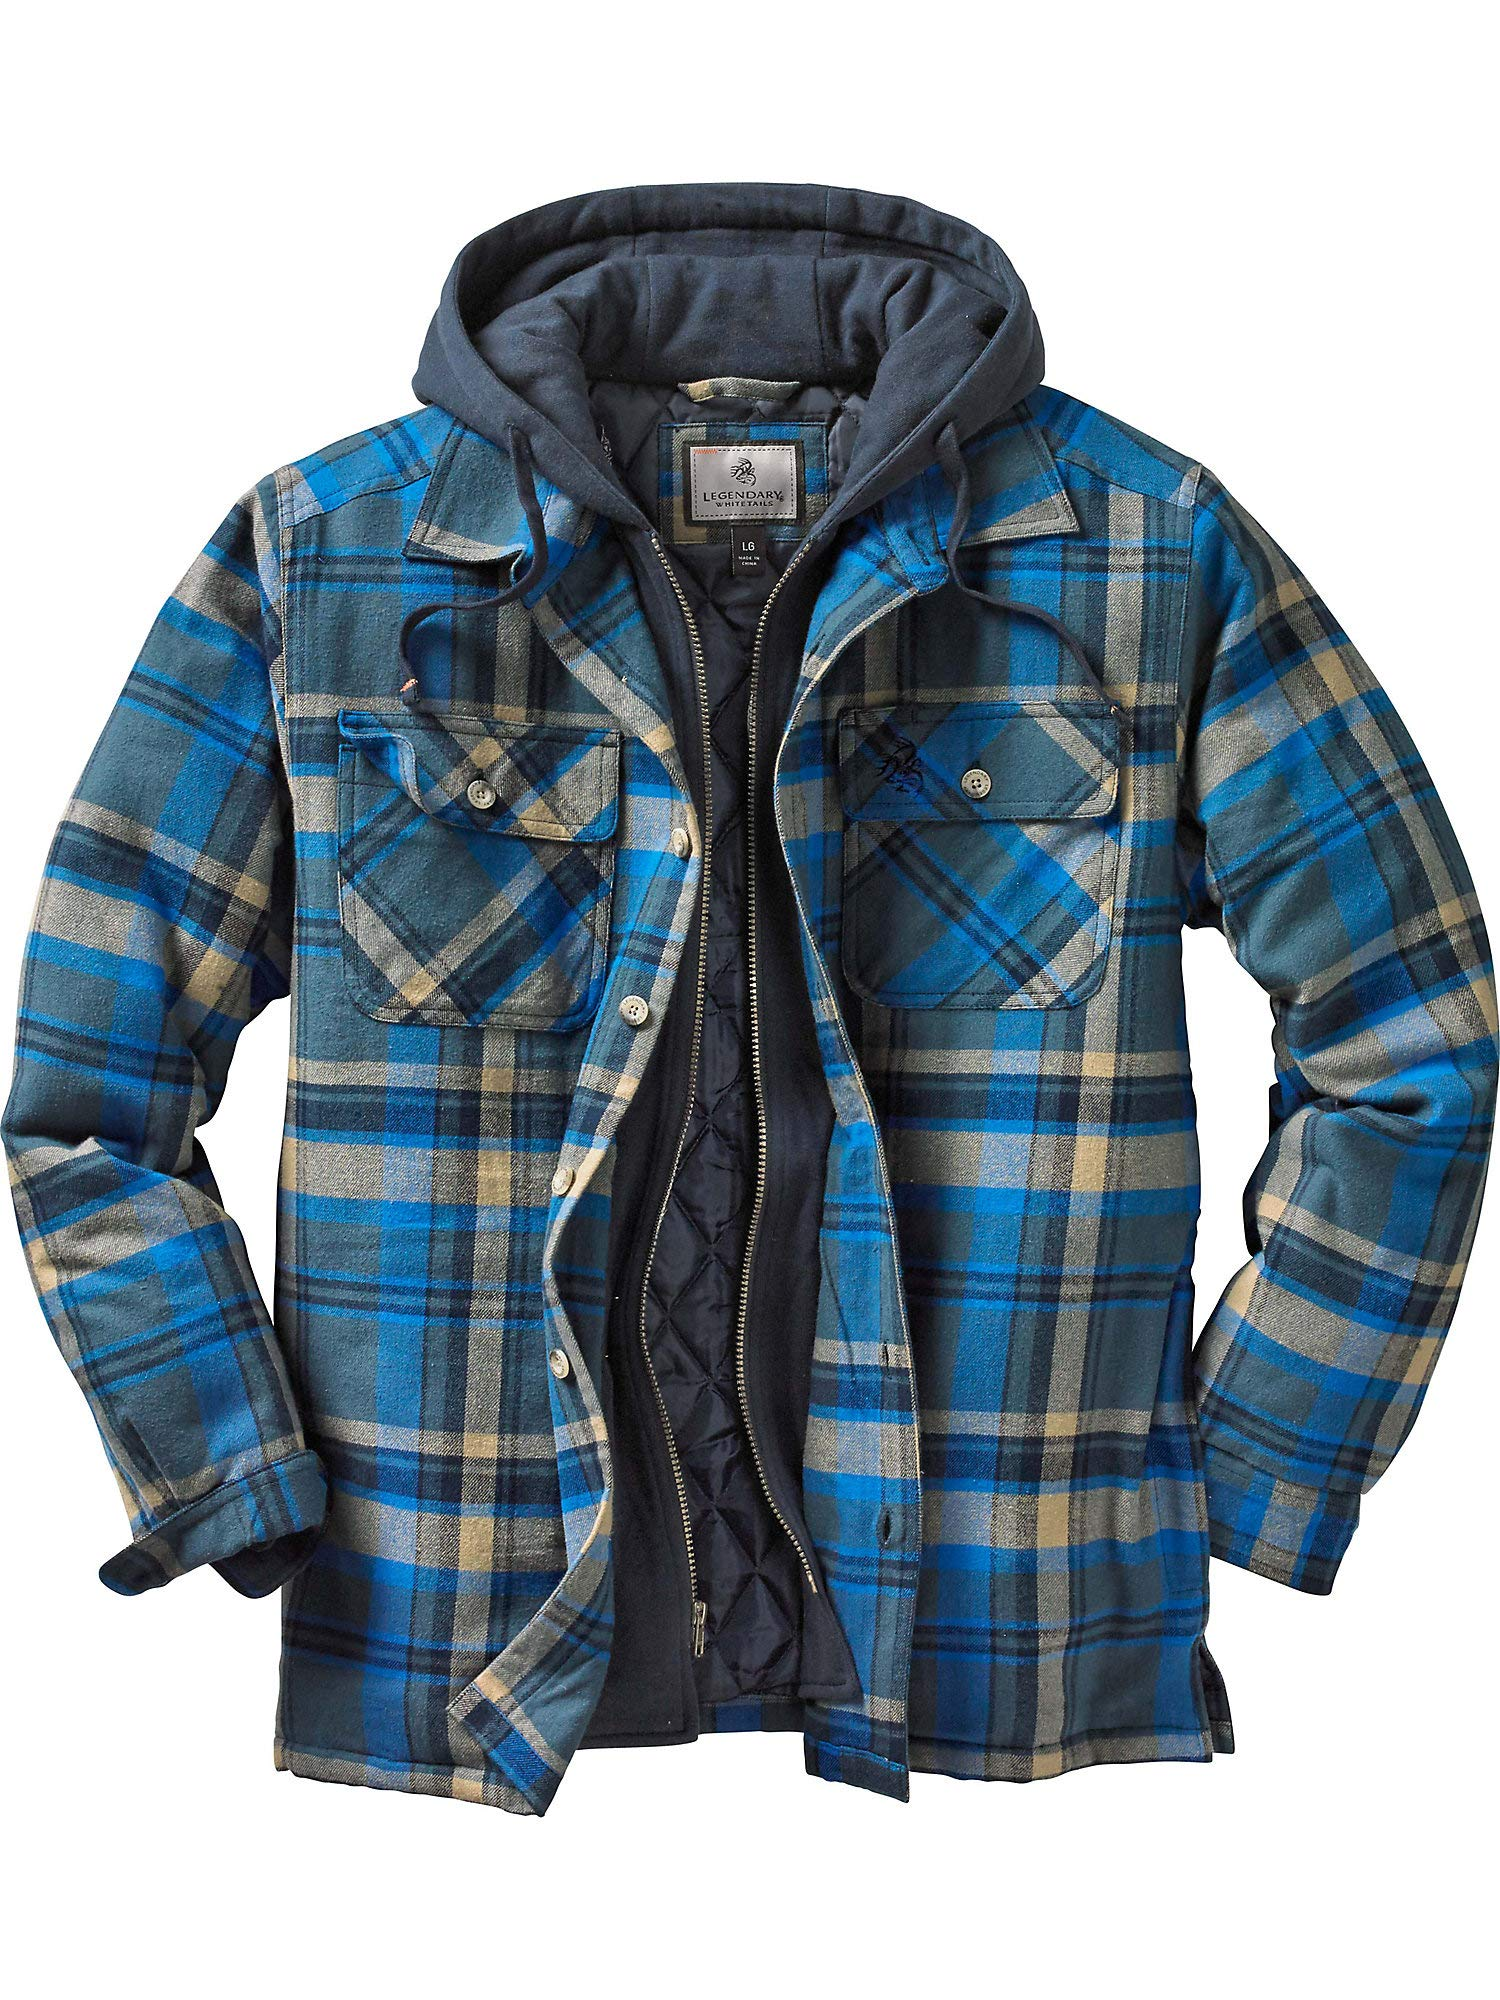 Legendary Whitetails Maplewood Hooded Shirt Jacket, Slate Hatchet Plaid, XXXX-Large by Legendary Whitetails